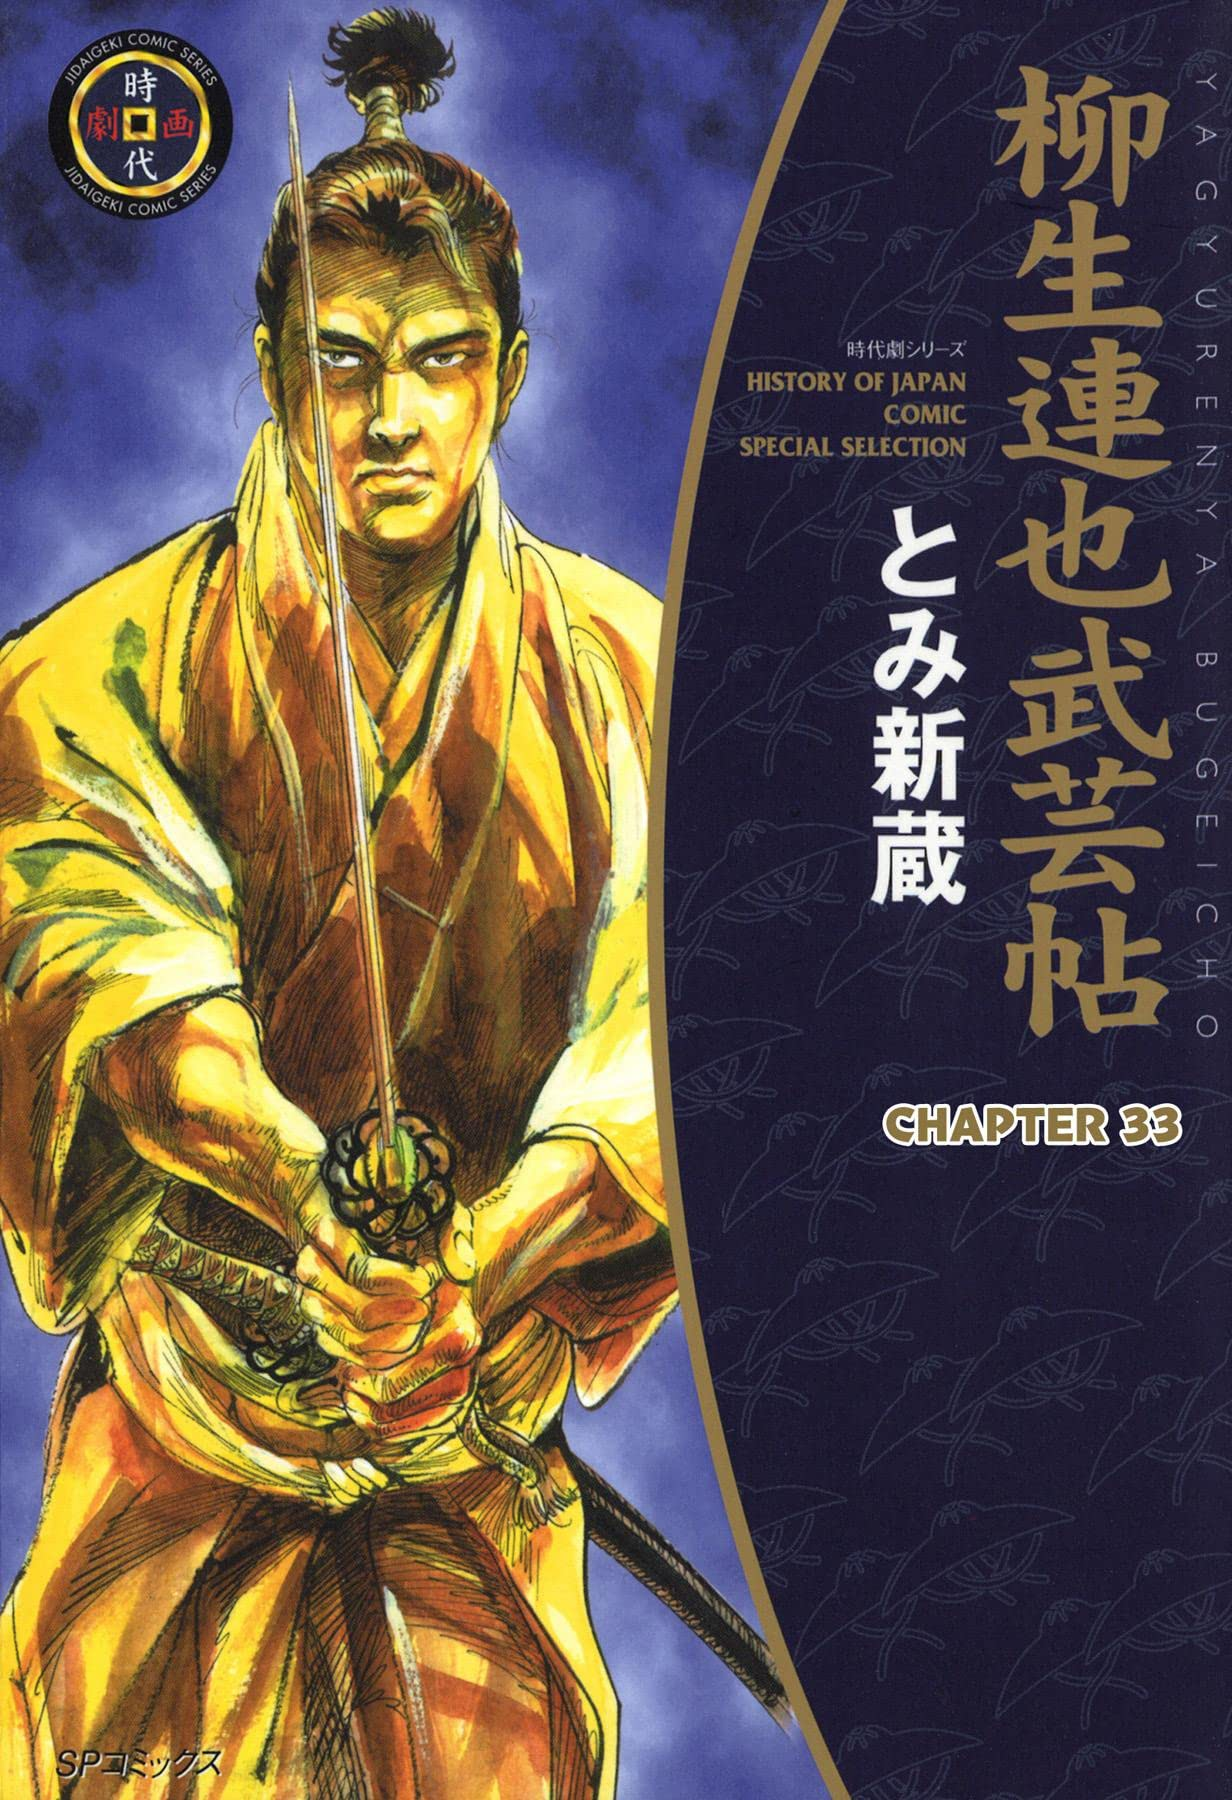 YAGYU RENYA, LEGEND OF THE SWORD MASTER #33